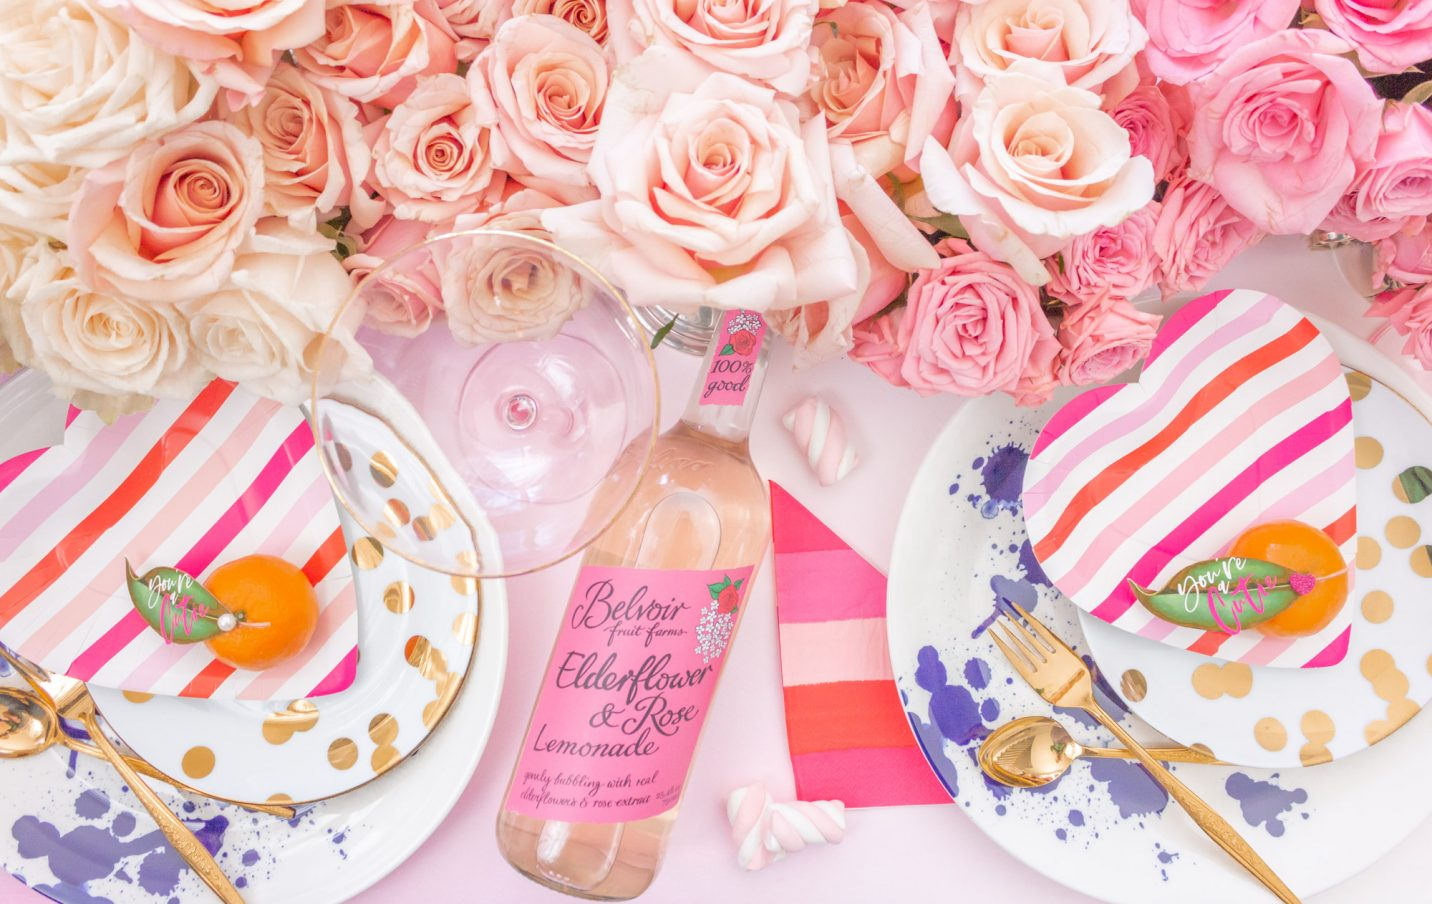 Galentine's Party Decor Ideas